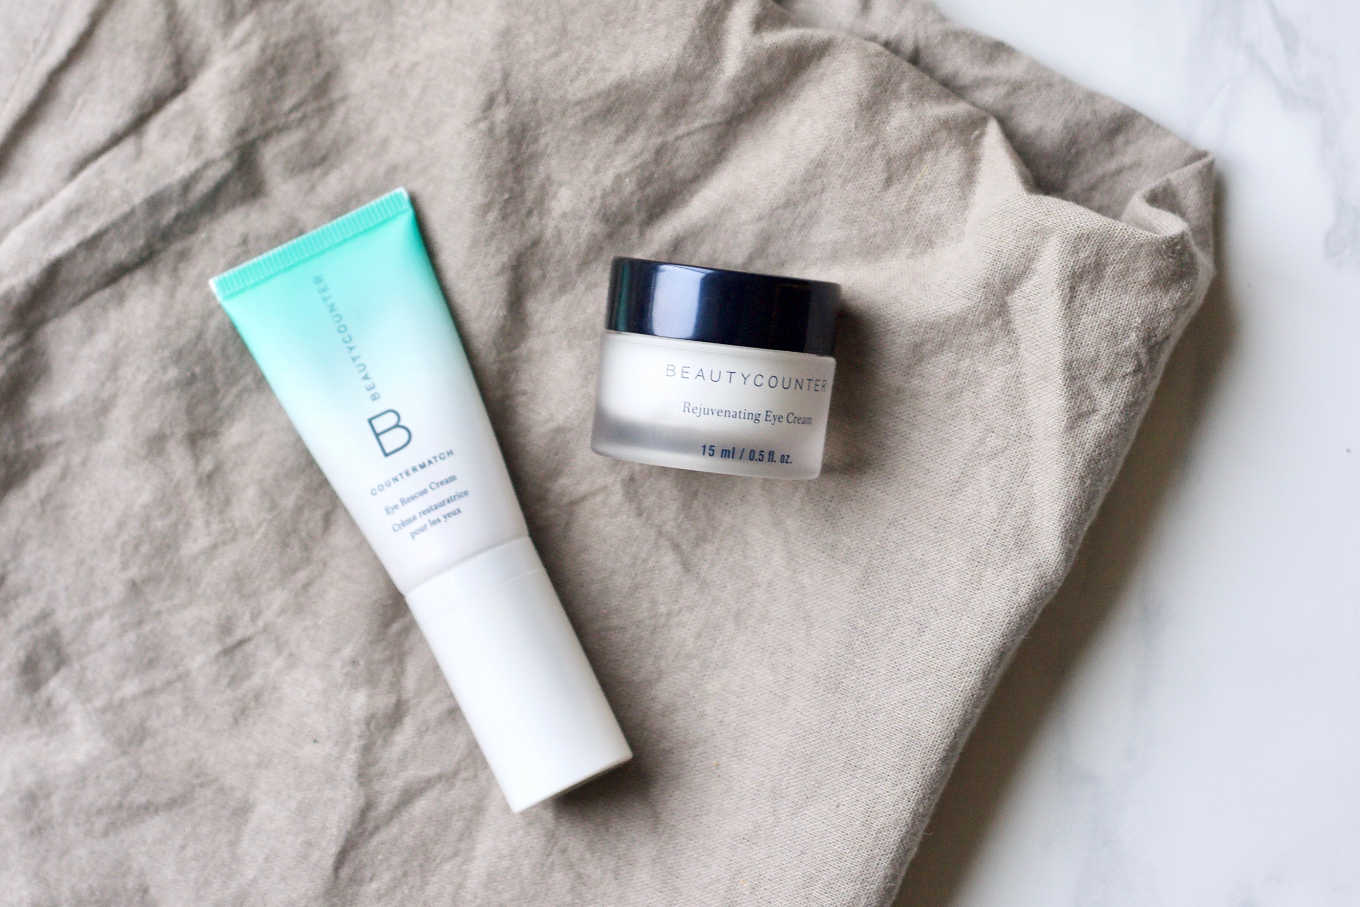 I use Beautycounter's countermatch eye rescue cream and rejuvenating eye cream.